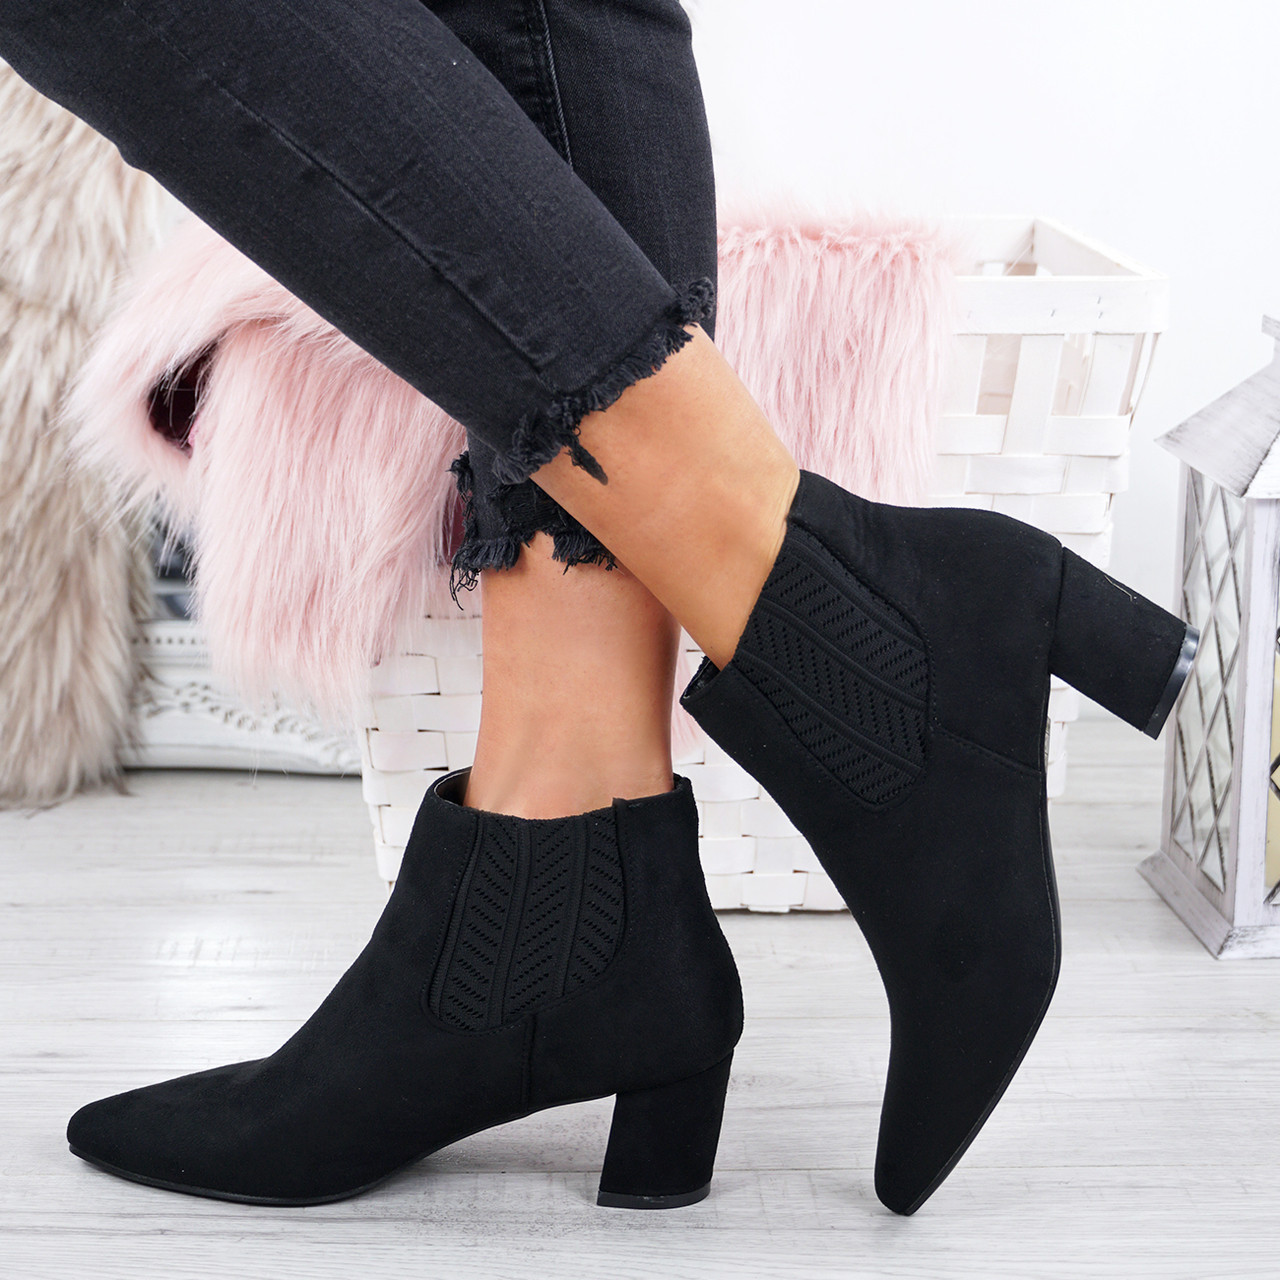 43a168b25e5 Ladies Womens Chelsea Ankle Boots Low Block Heel Pointed Toe ...